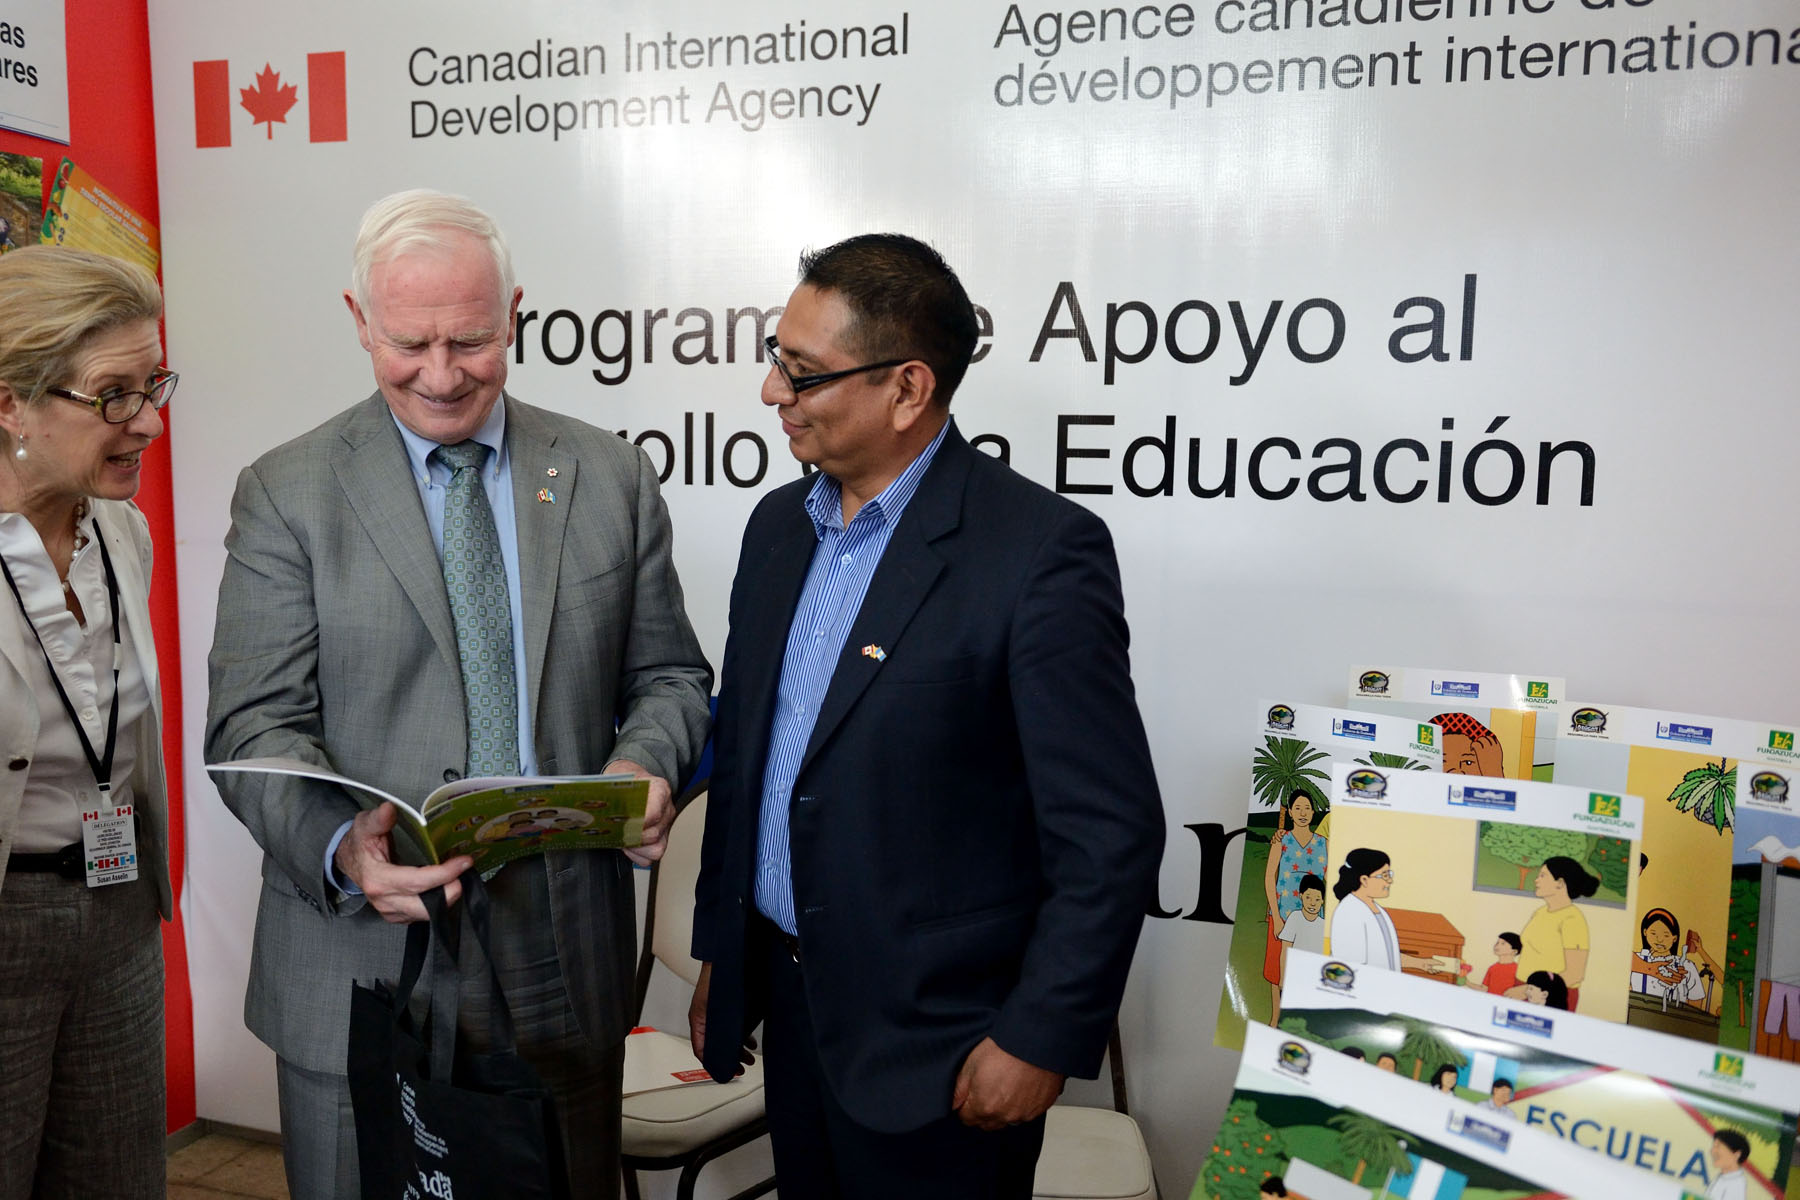 Following the discussion, His Excellency visited an exhibition of projects supported by the Government of Canada on food security, nutrition and rural development.